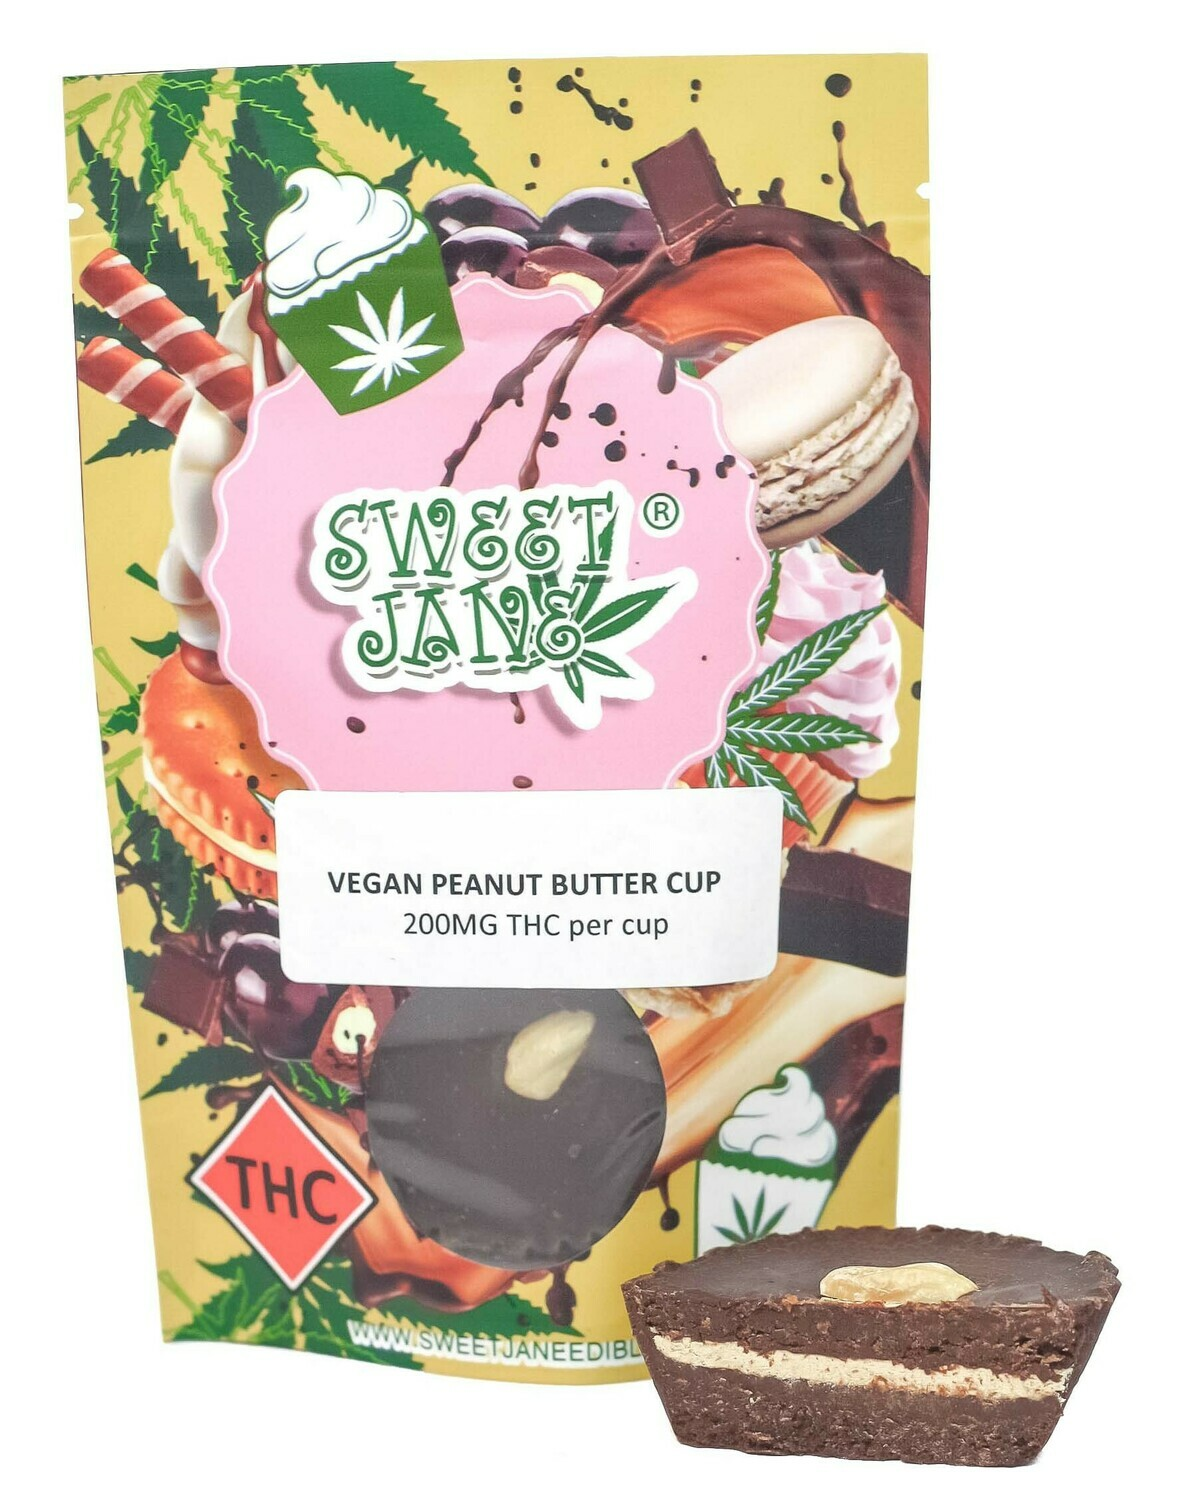 (200mg THC or 200mg CBD) Vegan Peanut Butter Cup By Sweet Jane